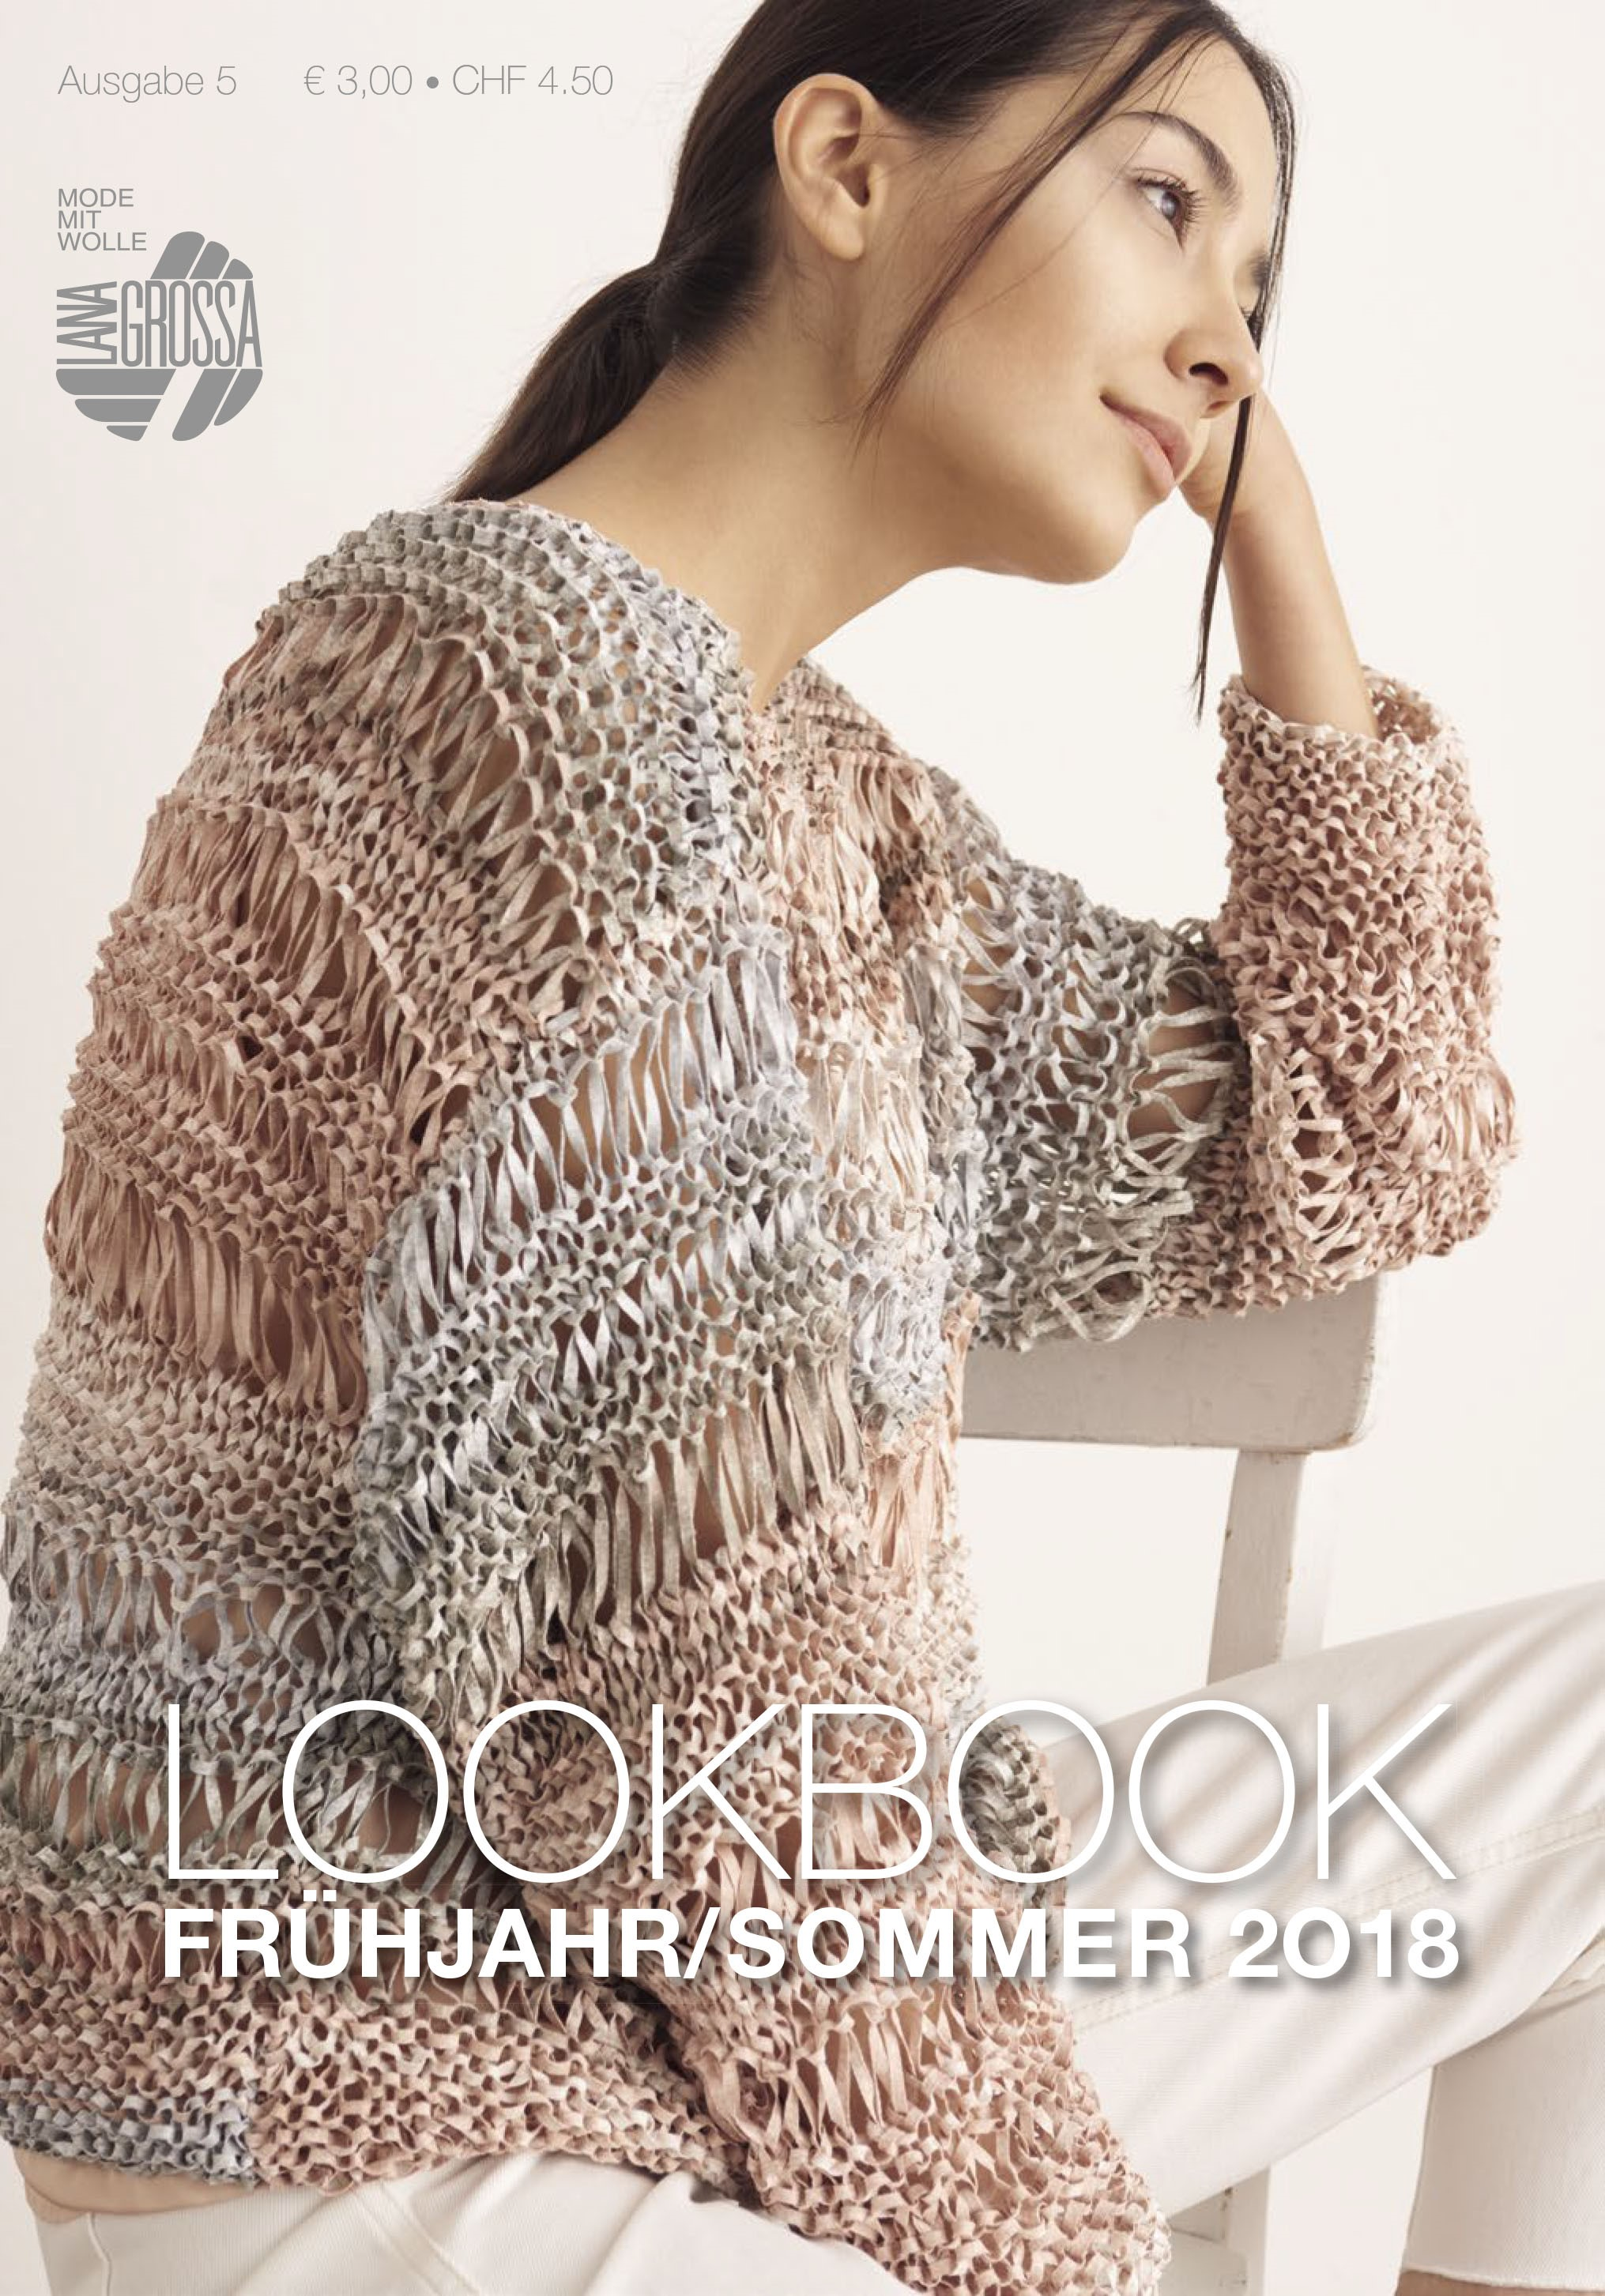 Lana Grossa LOOKBOOK No. 5 - Knitting instructions (EN)